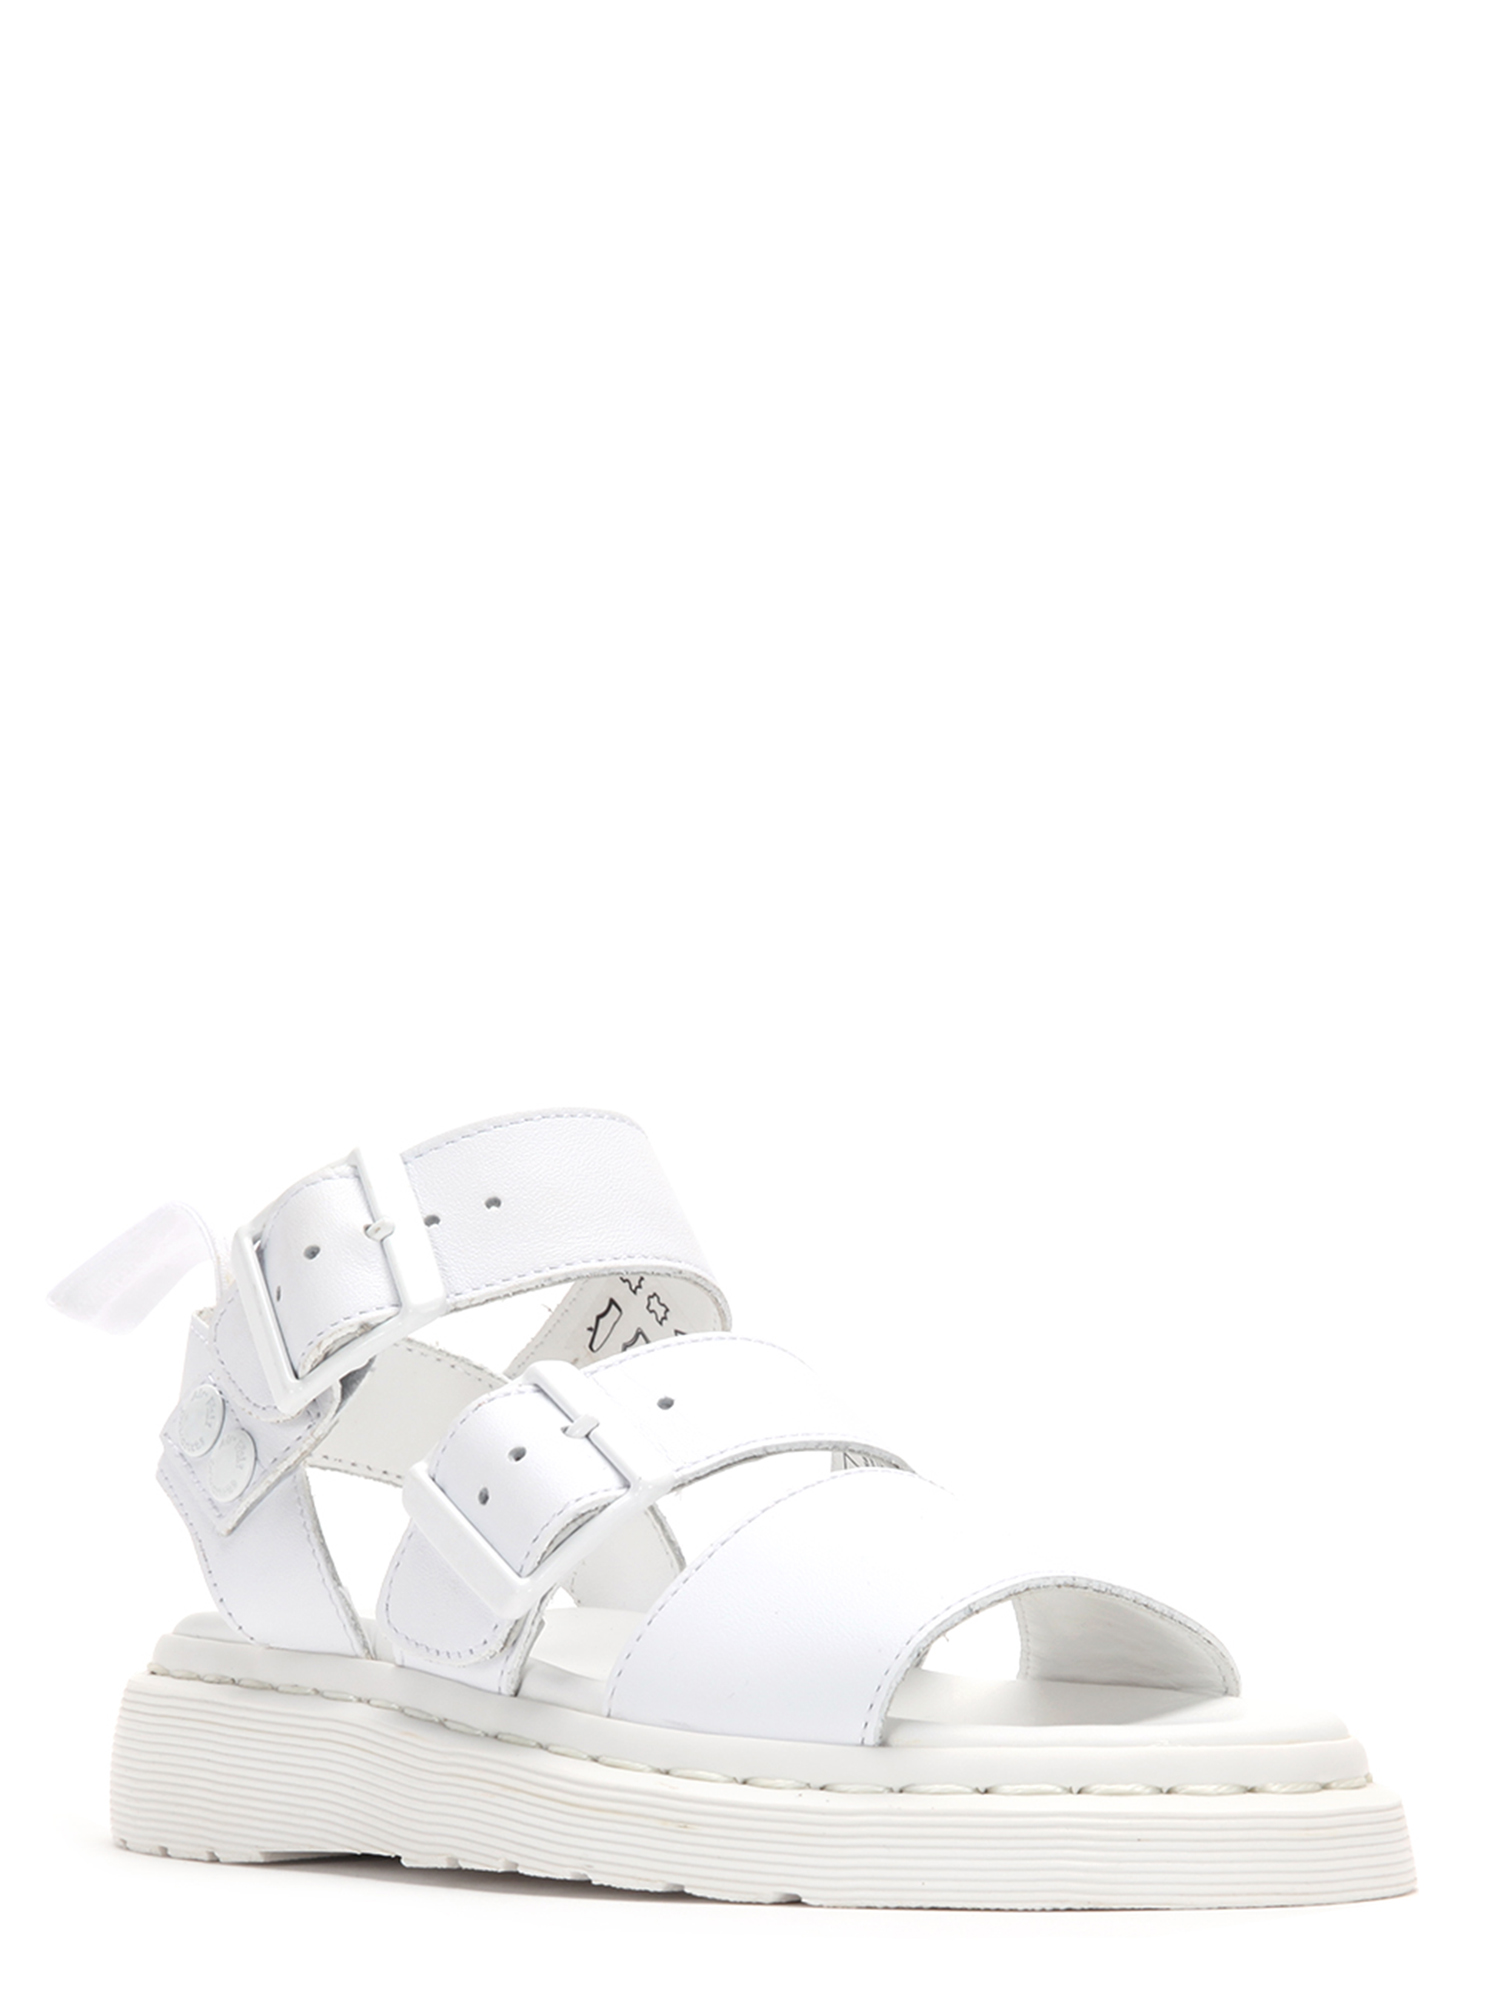 Dr. Martens Gryphon Strap Sandals 16821100 White by